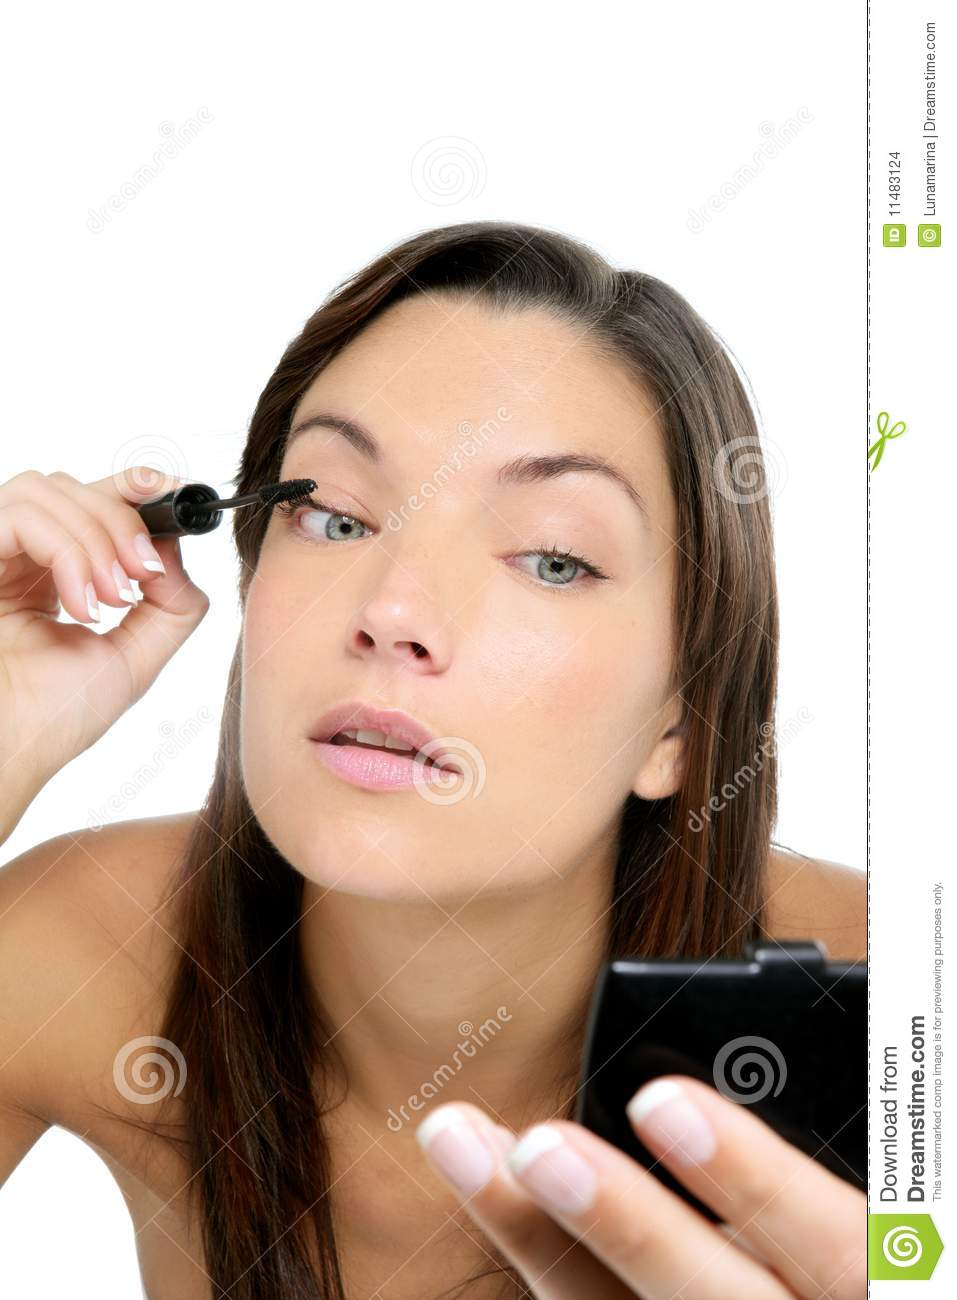 Beautiful Portrait Of Woman Makeup With Brush Stock Images - Image 11483124